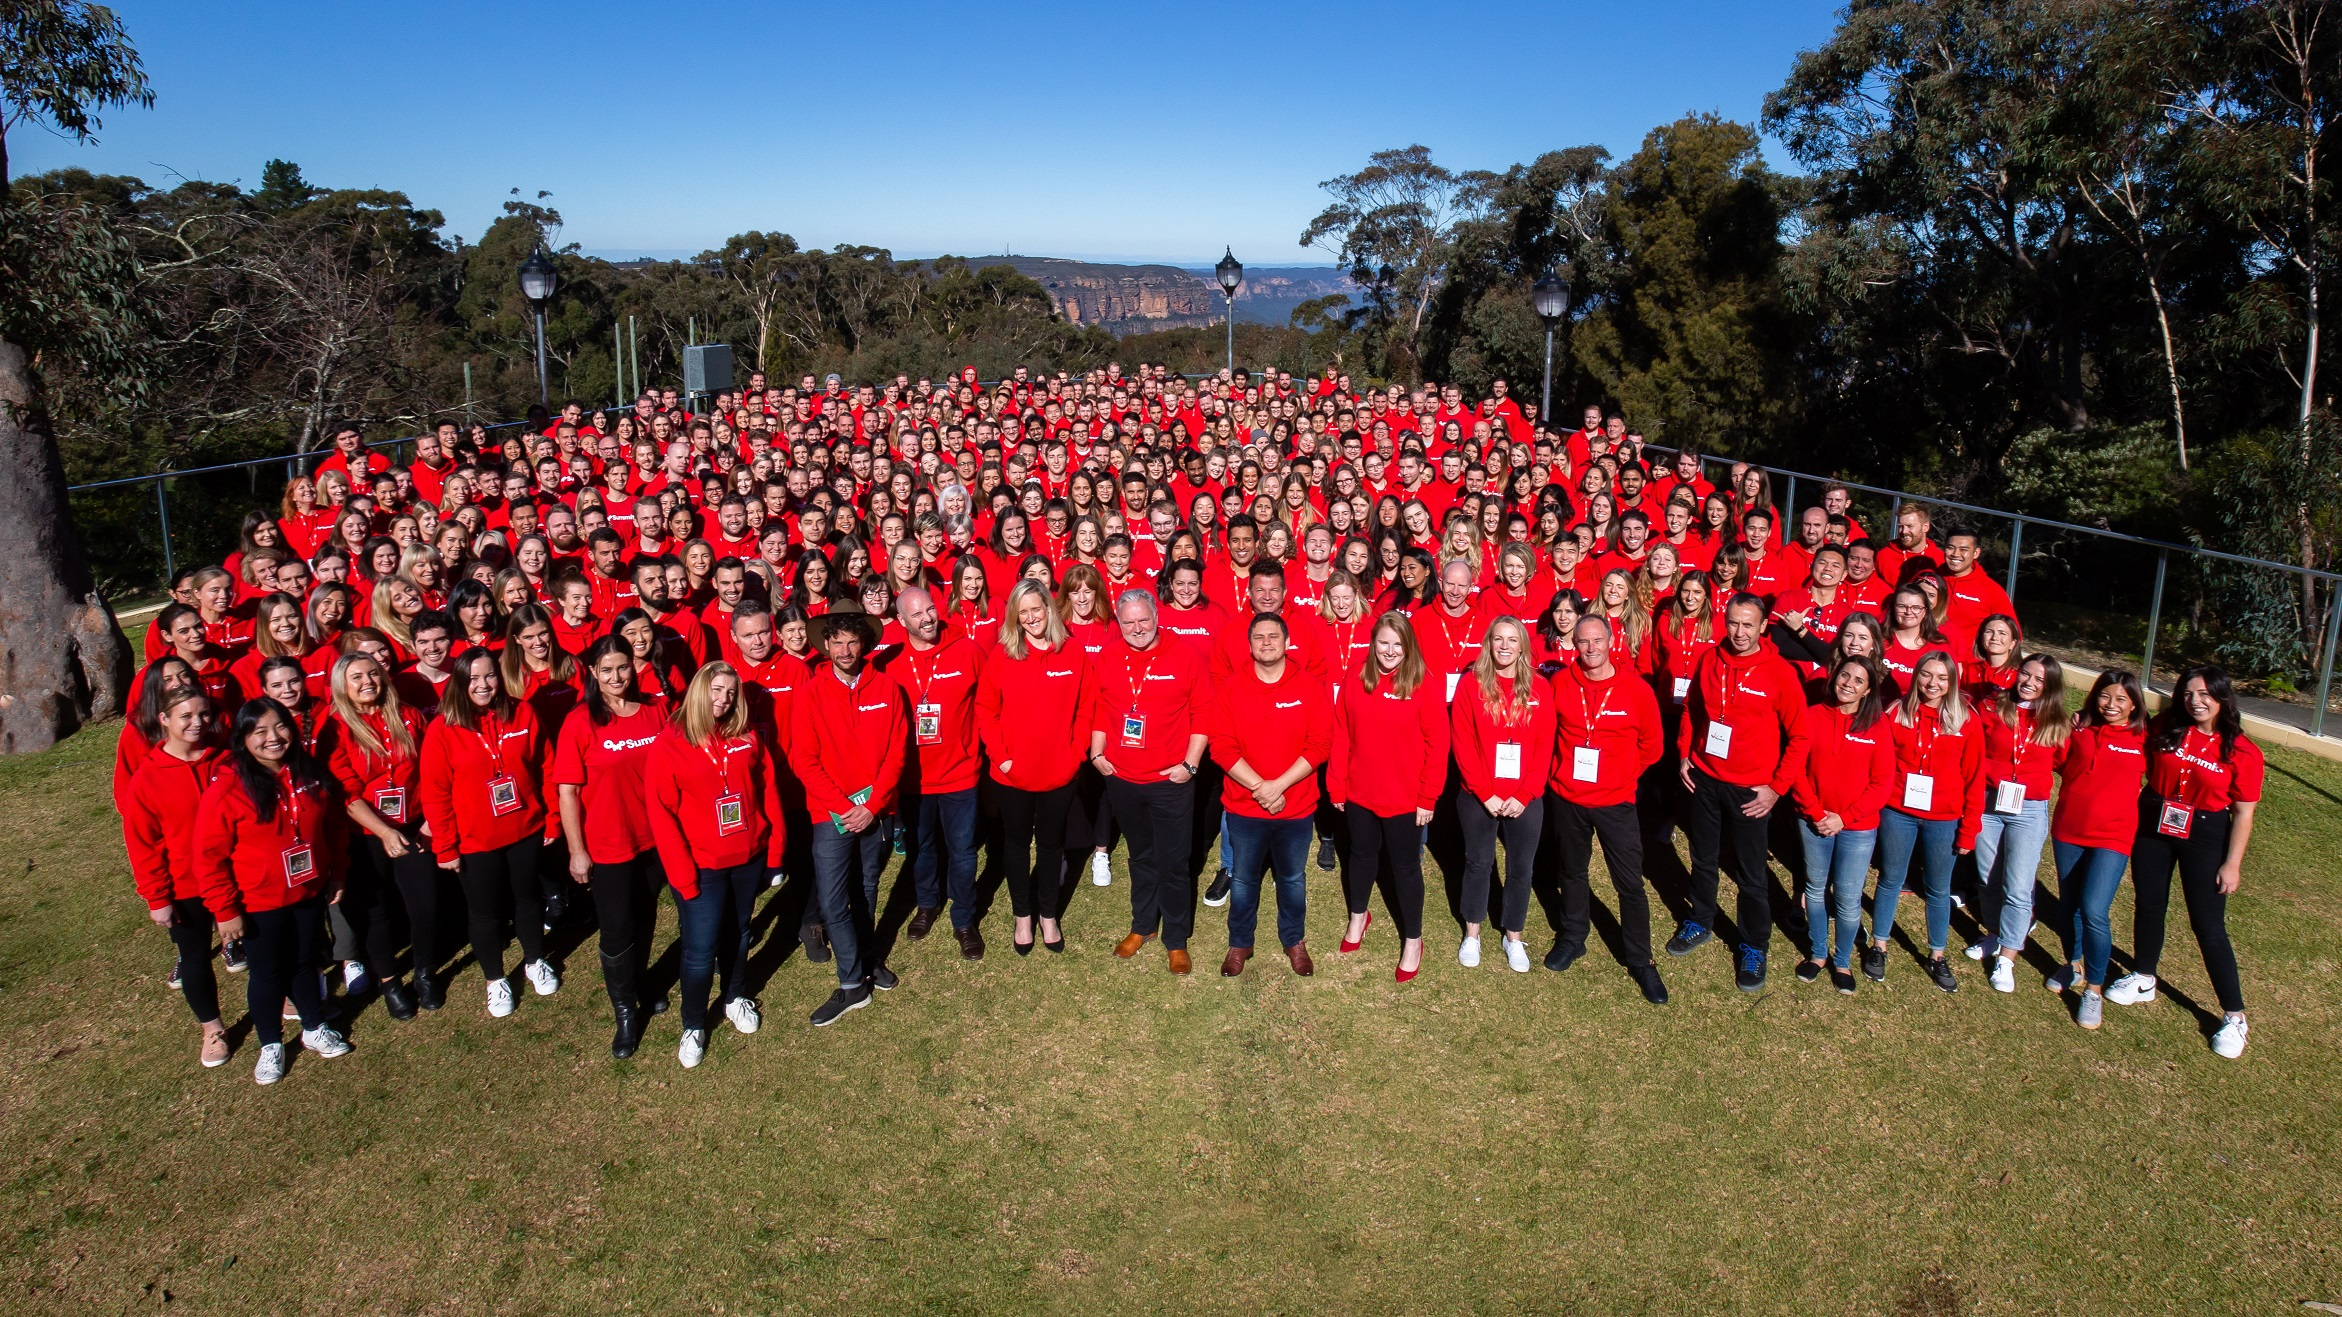 OMD ranks #4 in 2019 Best Places to Work Study in 100+ category; Versa ranks #7 in Under 100s